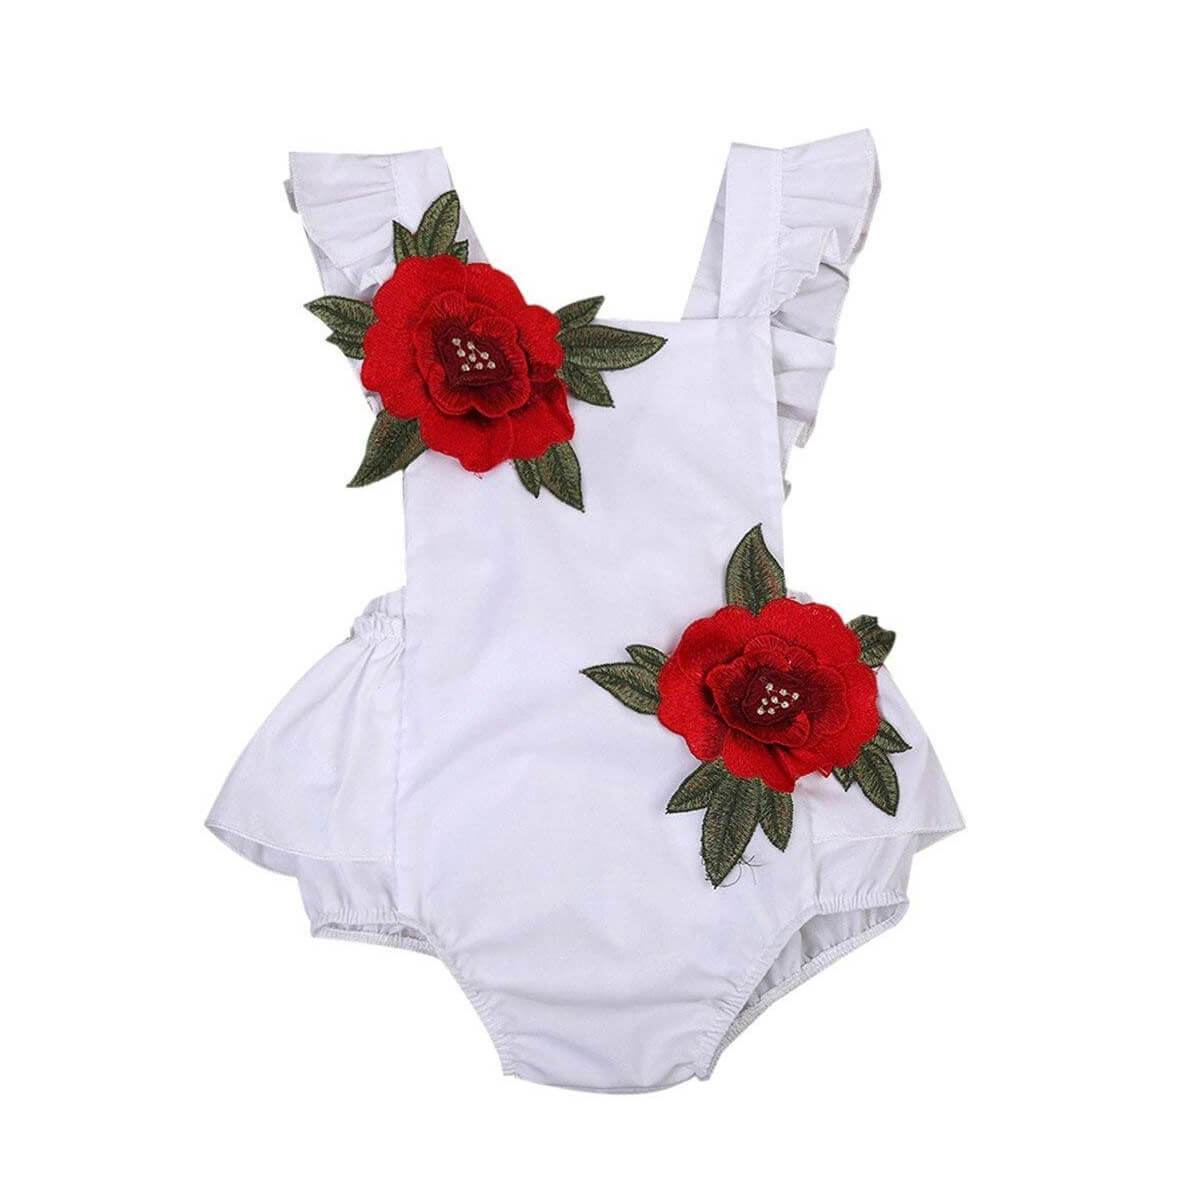 Floral Backless Romper - The Trendy Toddlers